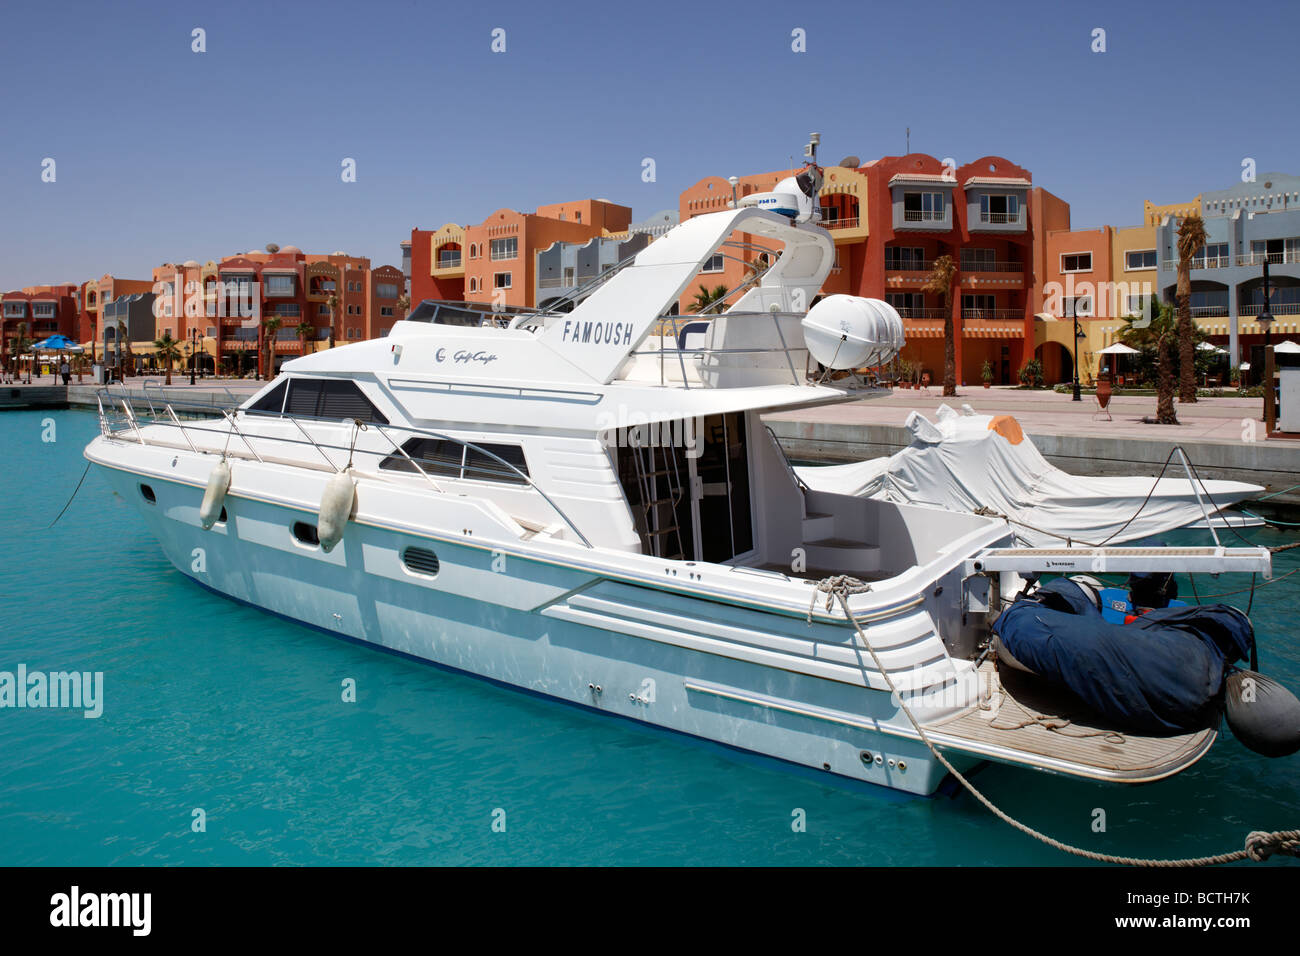 Private yacht in marina, Hurghada, Egypt, Red Sea, Africa - Stock Image